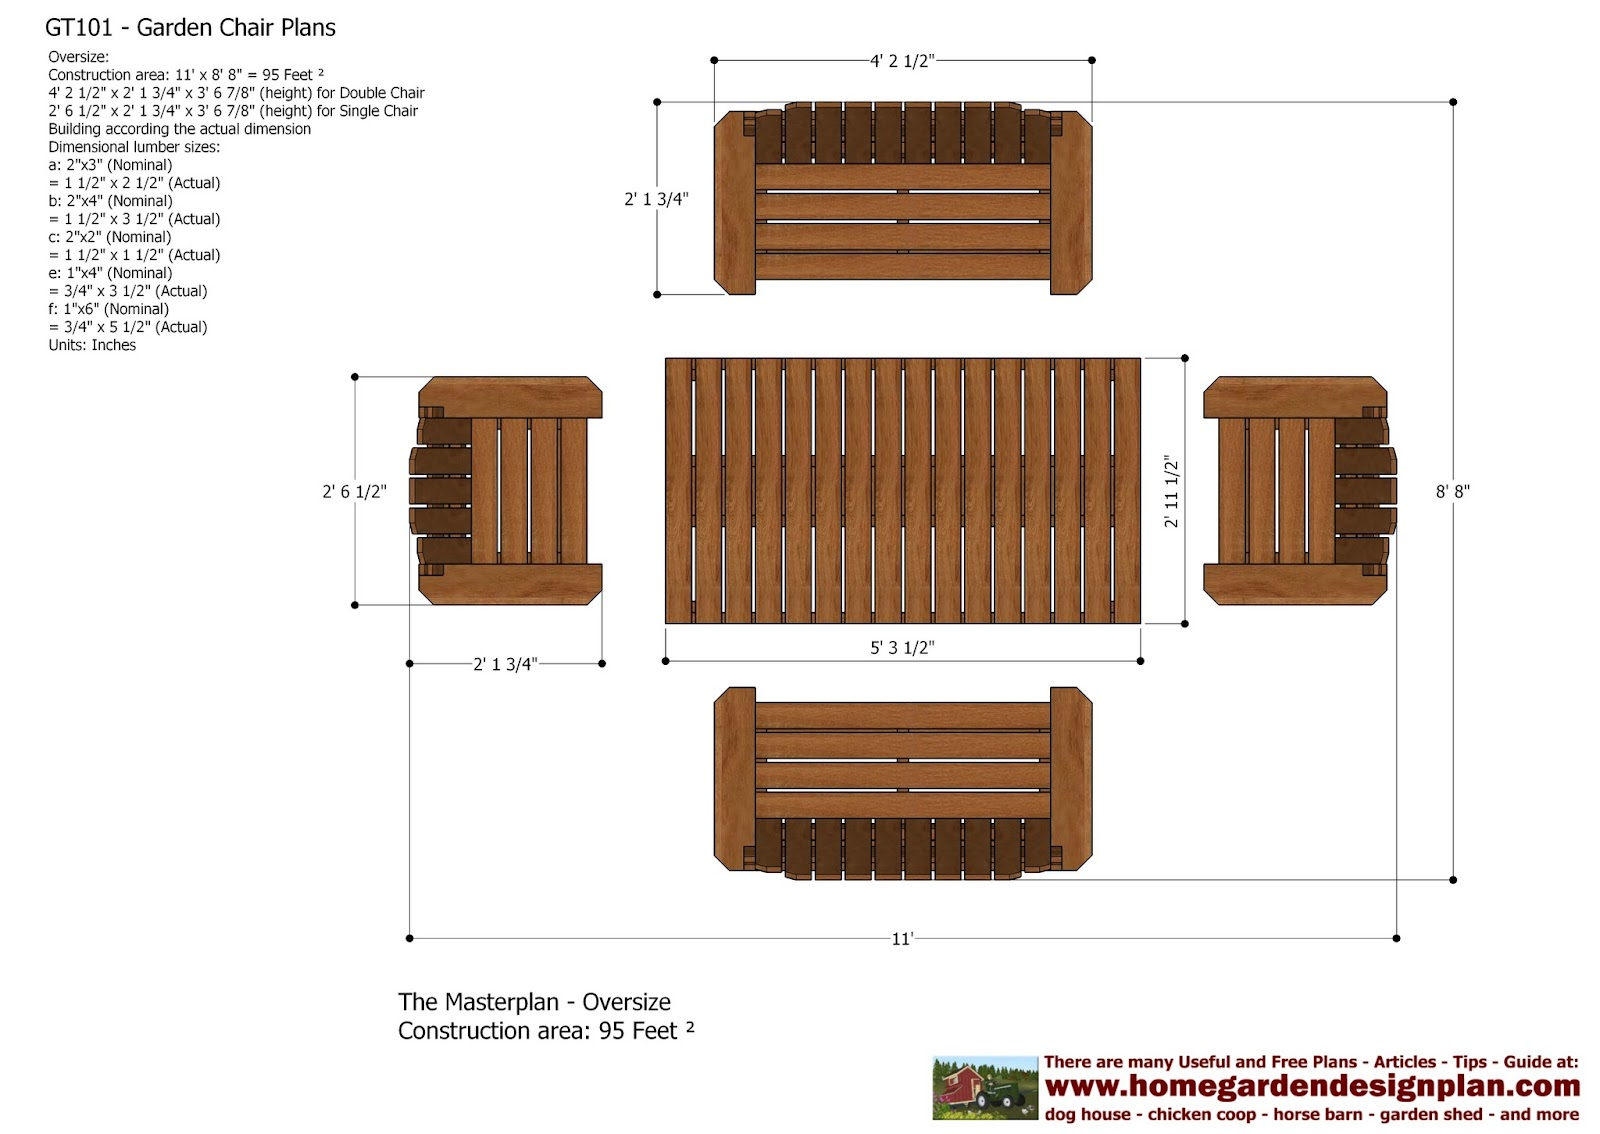 Garden Furniture Top View simple garden furniture top view psd with decorating